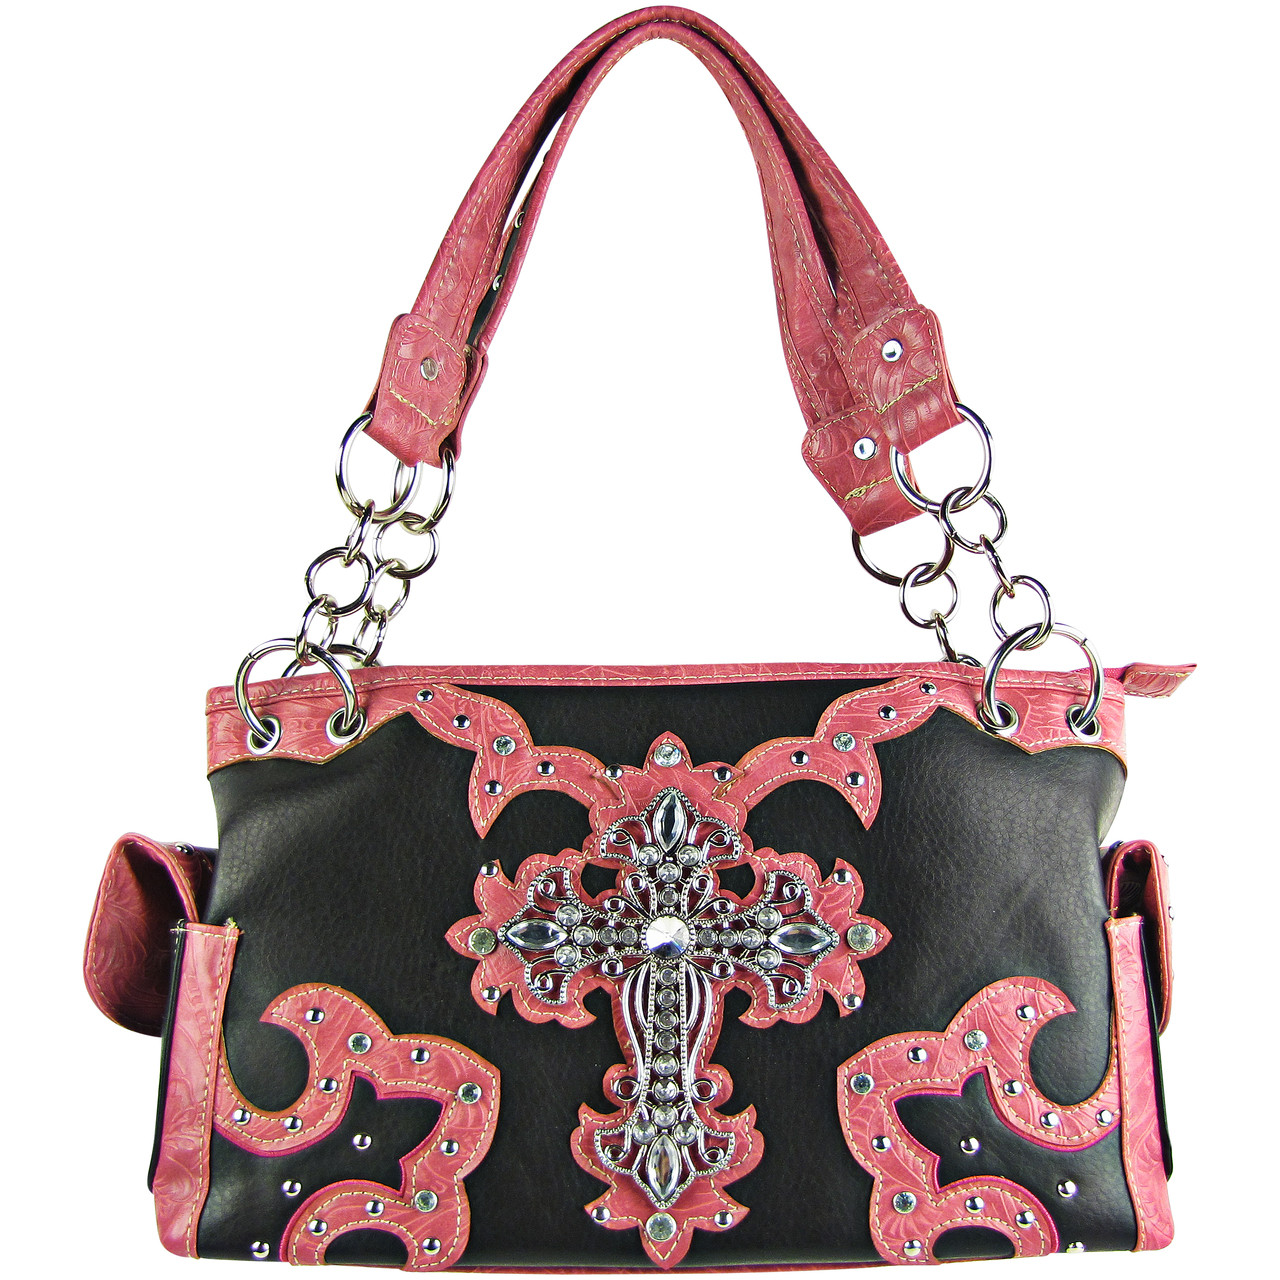 HOT PINK WESTERN STUDDED RHINESTONE CROSS DESIGN LOOK SHOULDER HANDBAG HOT PINK WESTERN STUDDED RHINESTONE CROSS DESIGN LOOK SHOULDER HANDBAG HB1-KW15RHPK